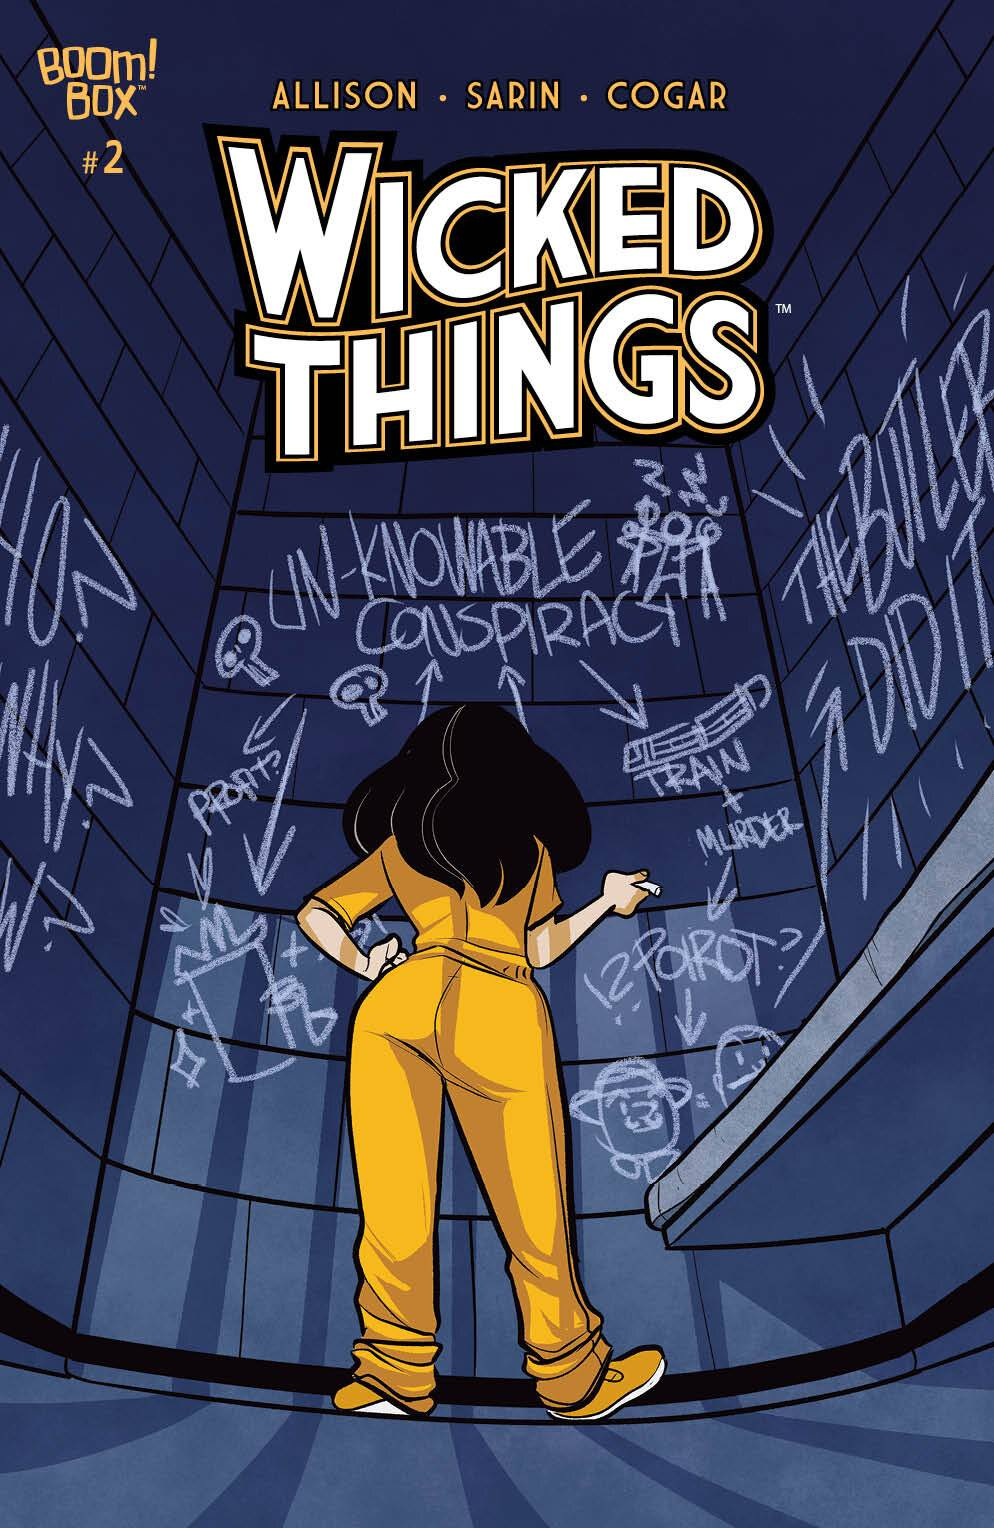 Wicked Things #2 cover